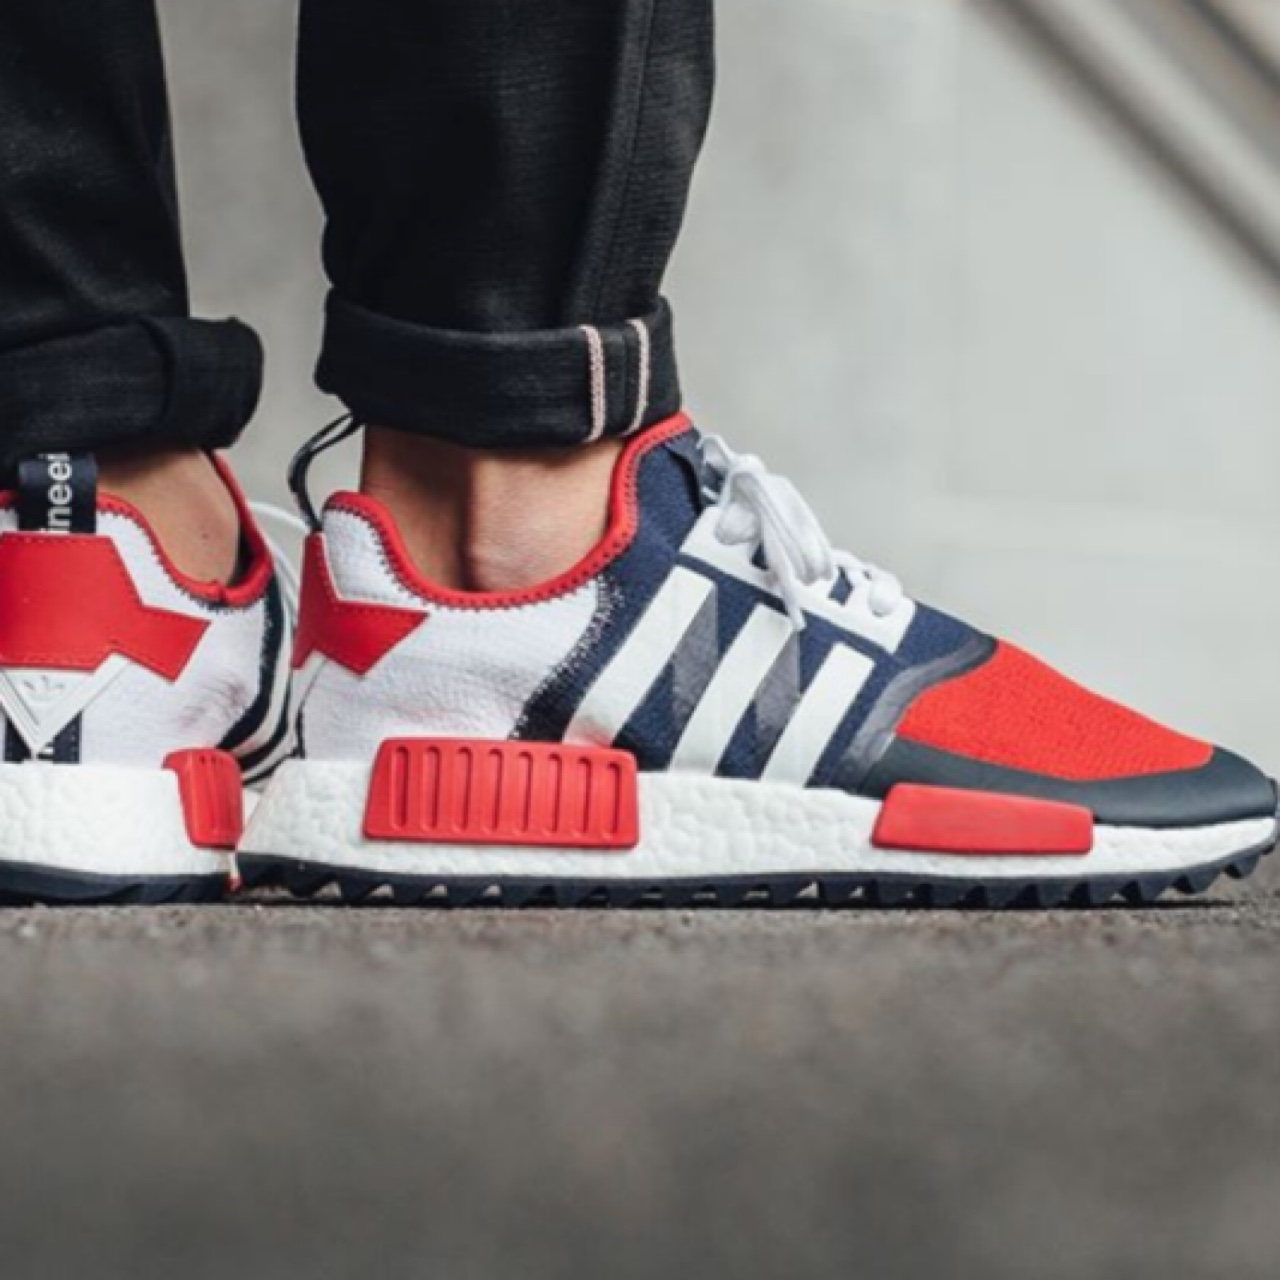 White Mountaineering x Adidas NMD PK Trail Red Depop